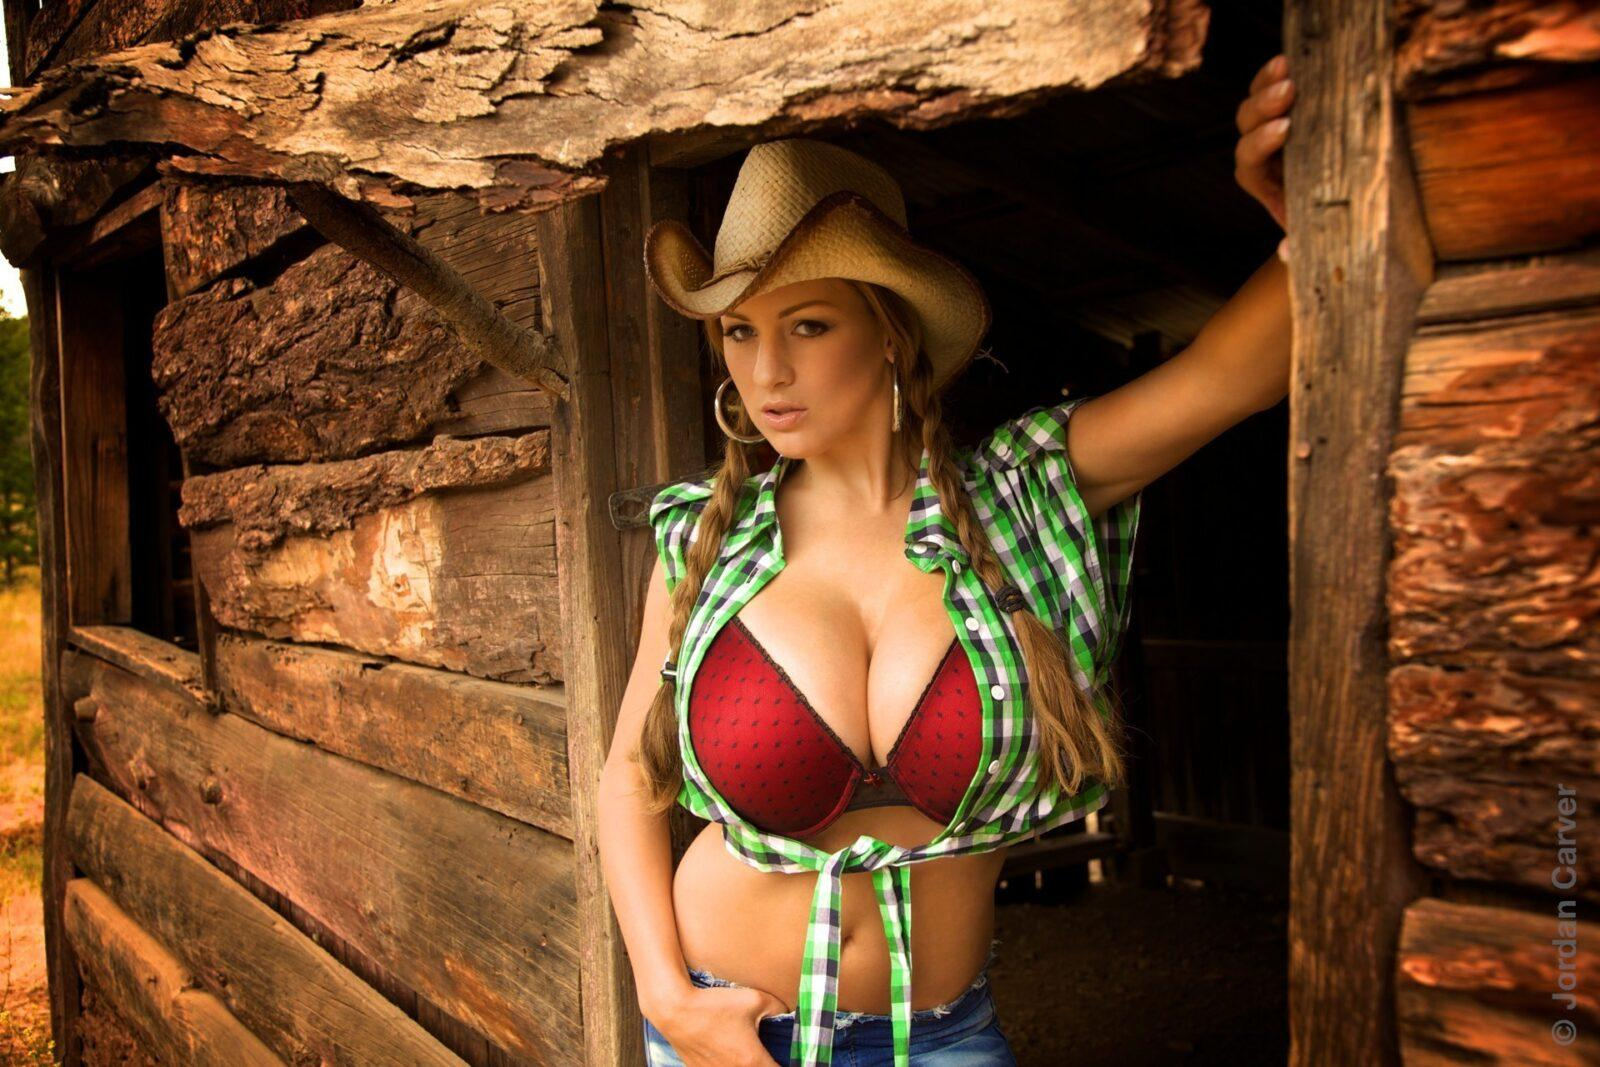 Big sexy country girls naked